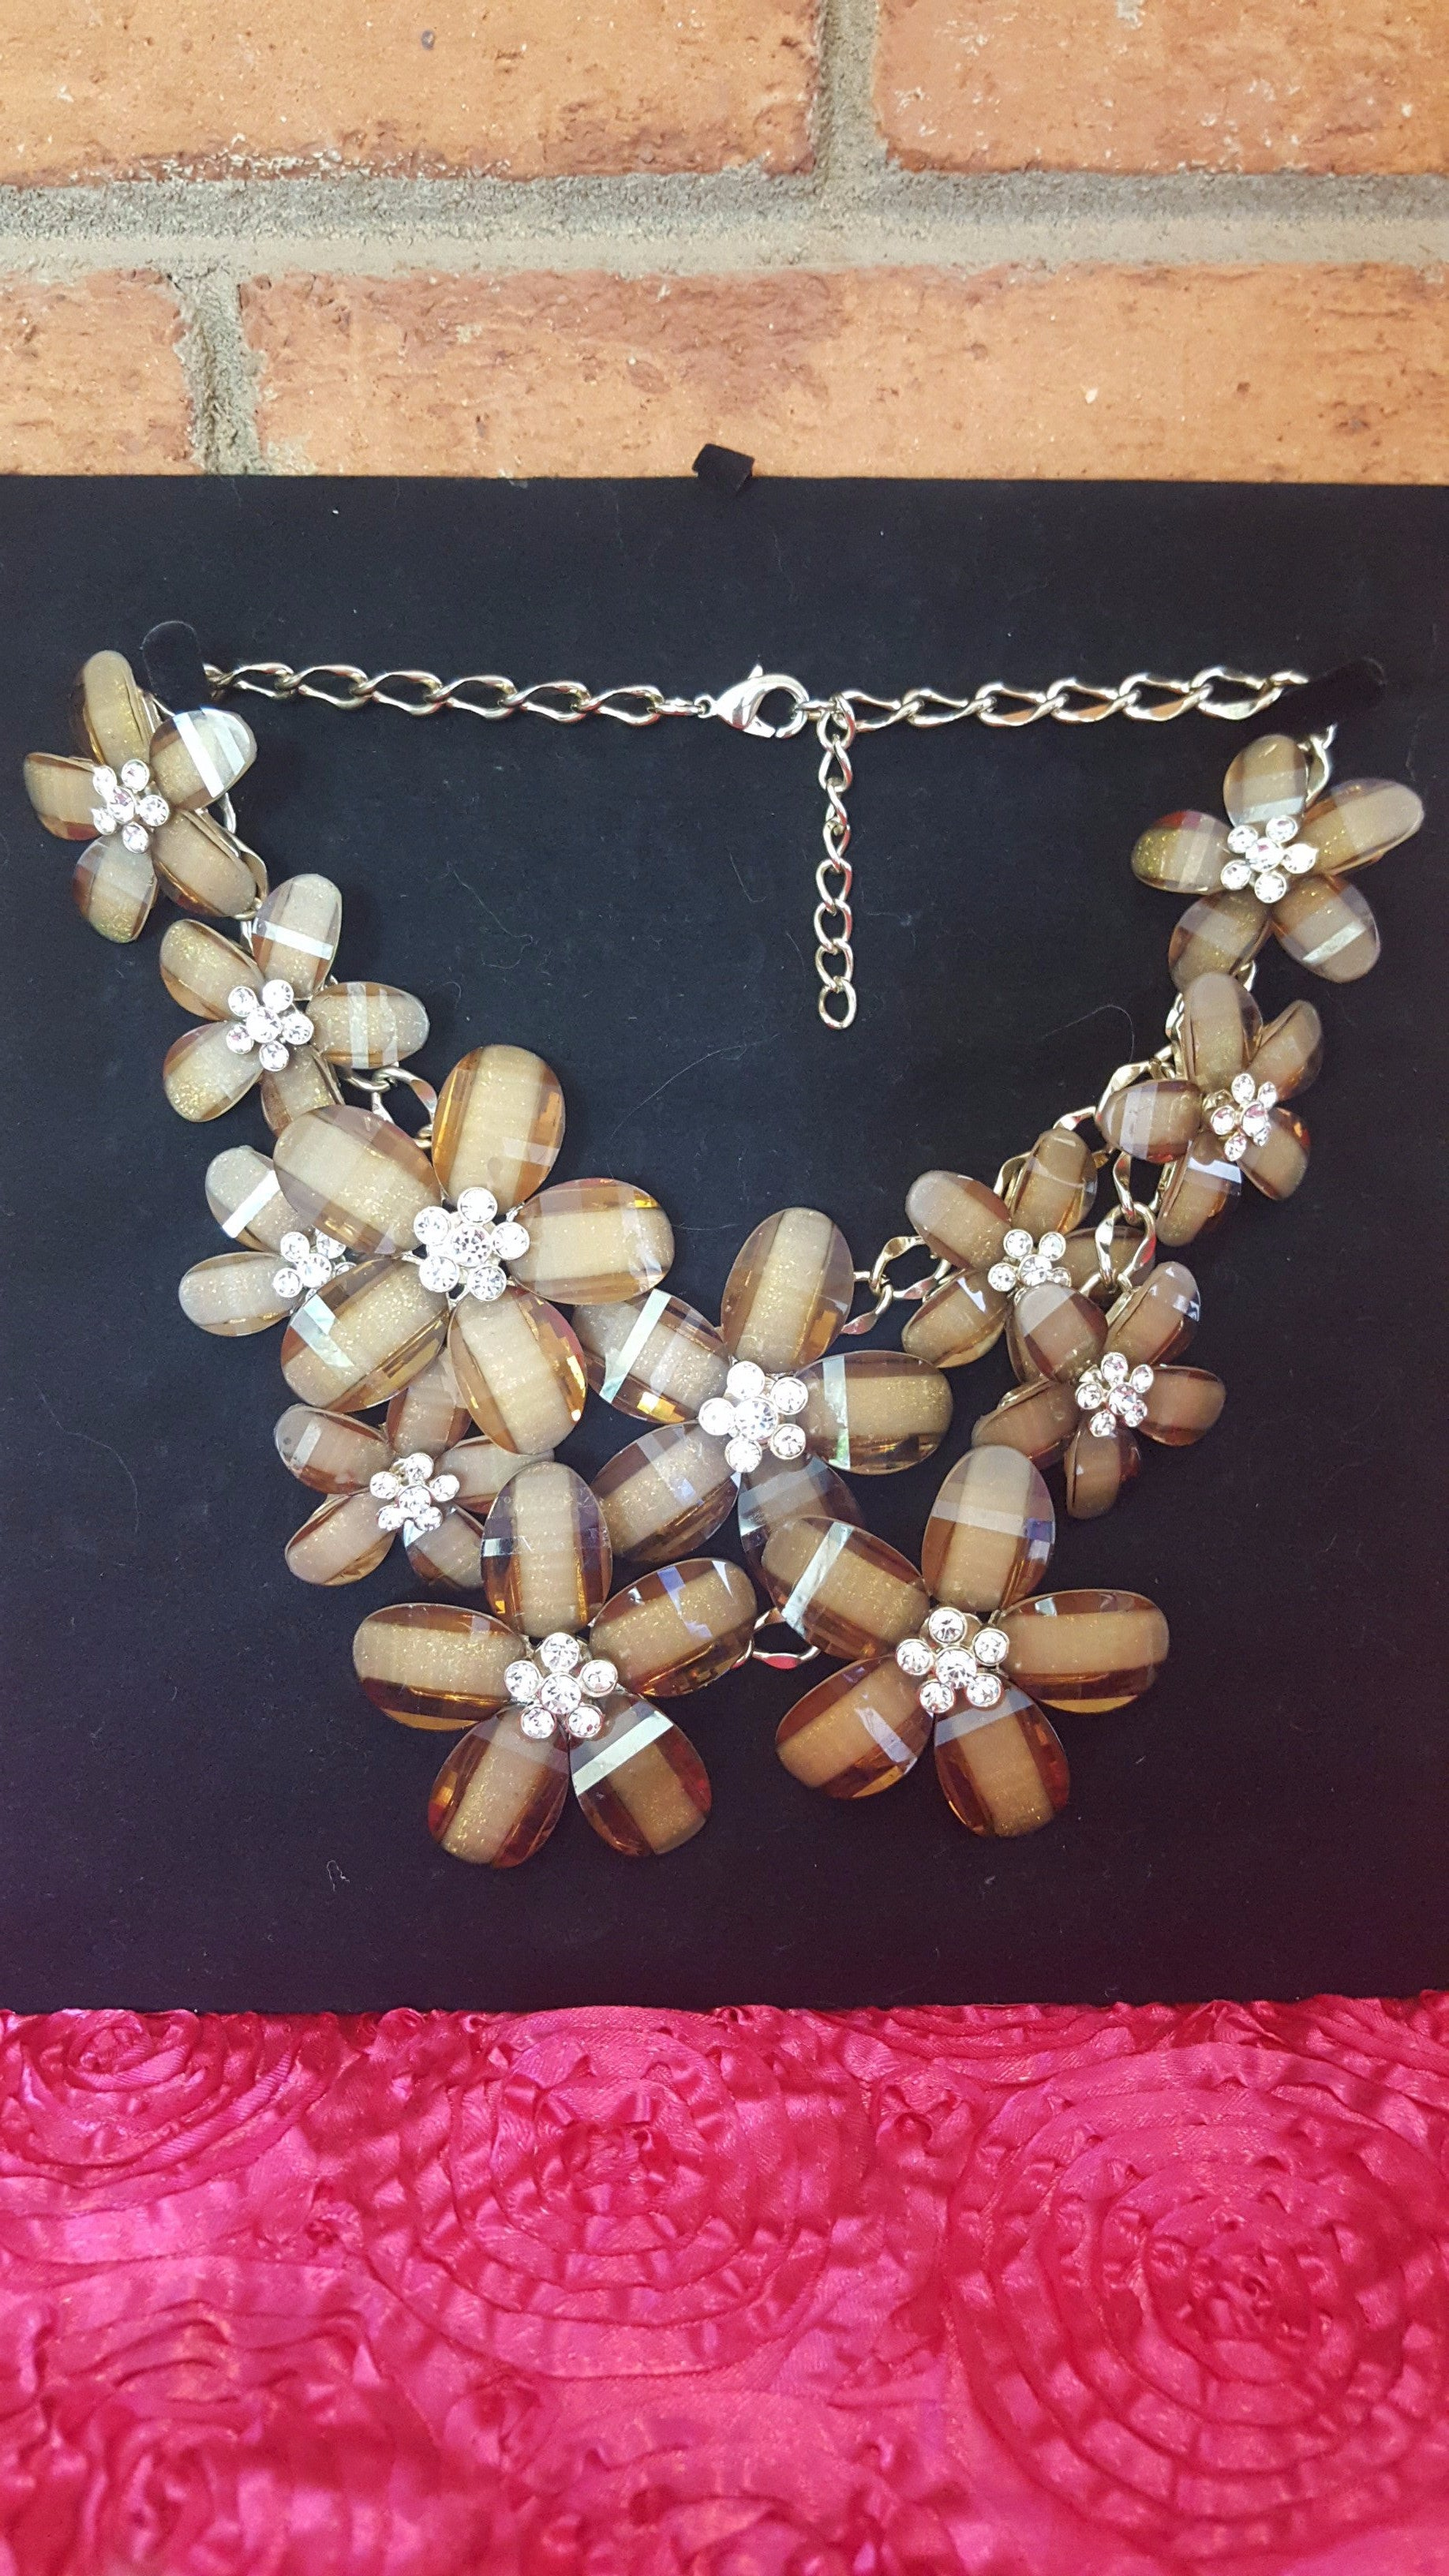 Floral Statememt Necklace Rental